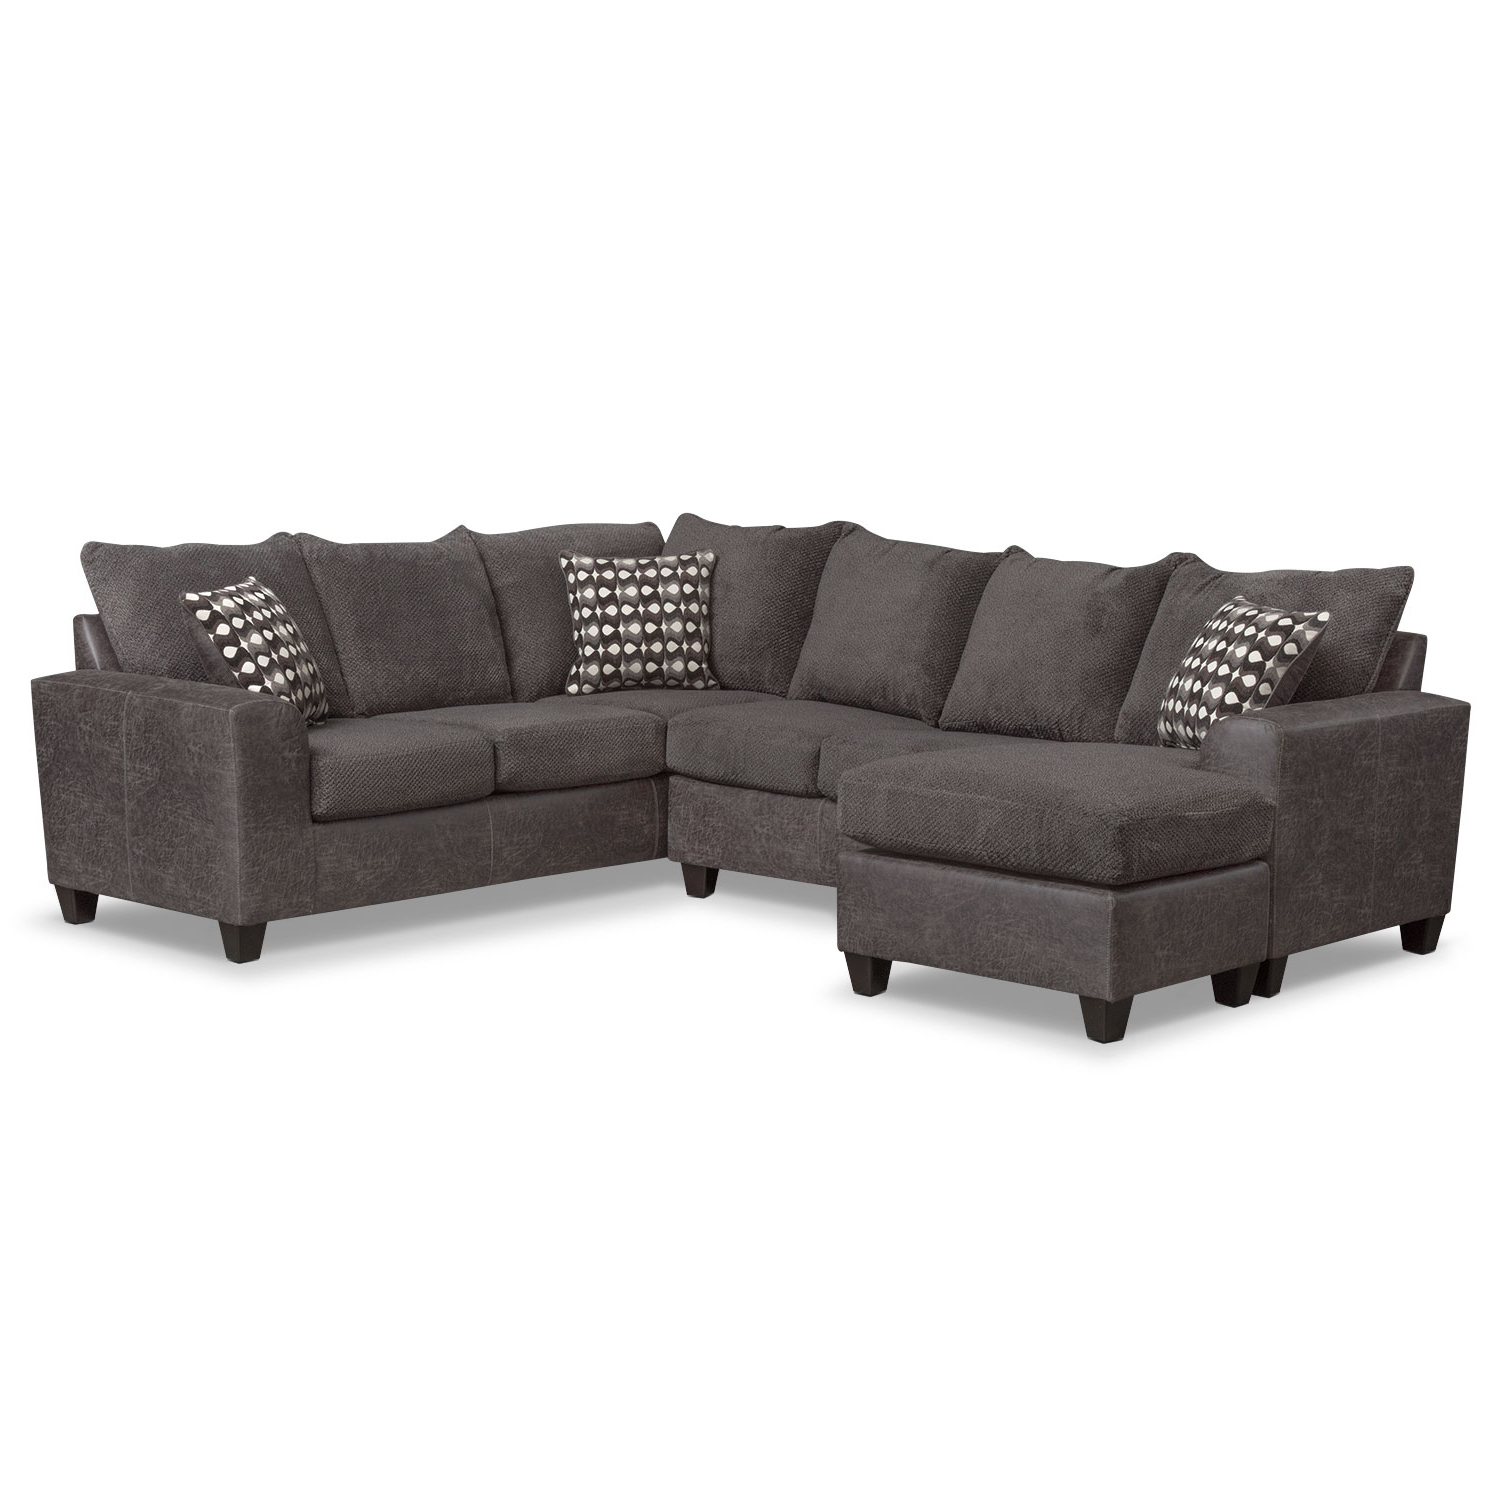 2018 Lucy Grey 2 Piece Sectionals With Laf Chaise In Sleeper Sectional With Chaise – Tidex (View 20 of 20)